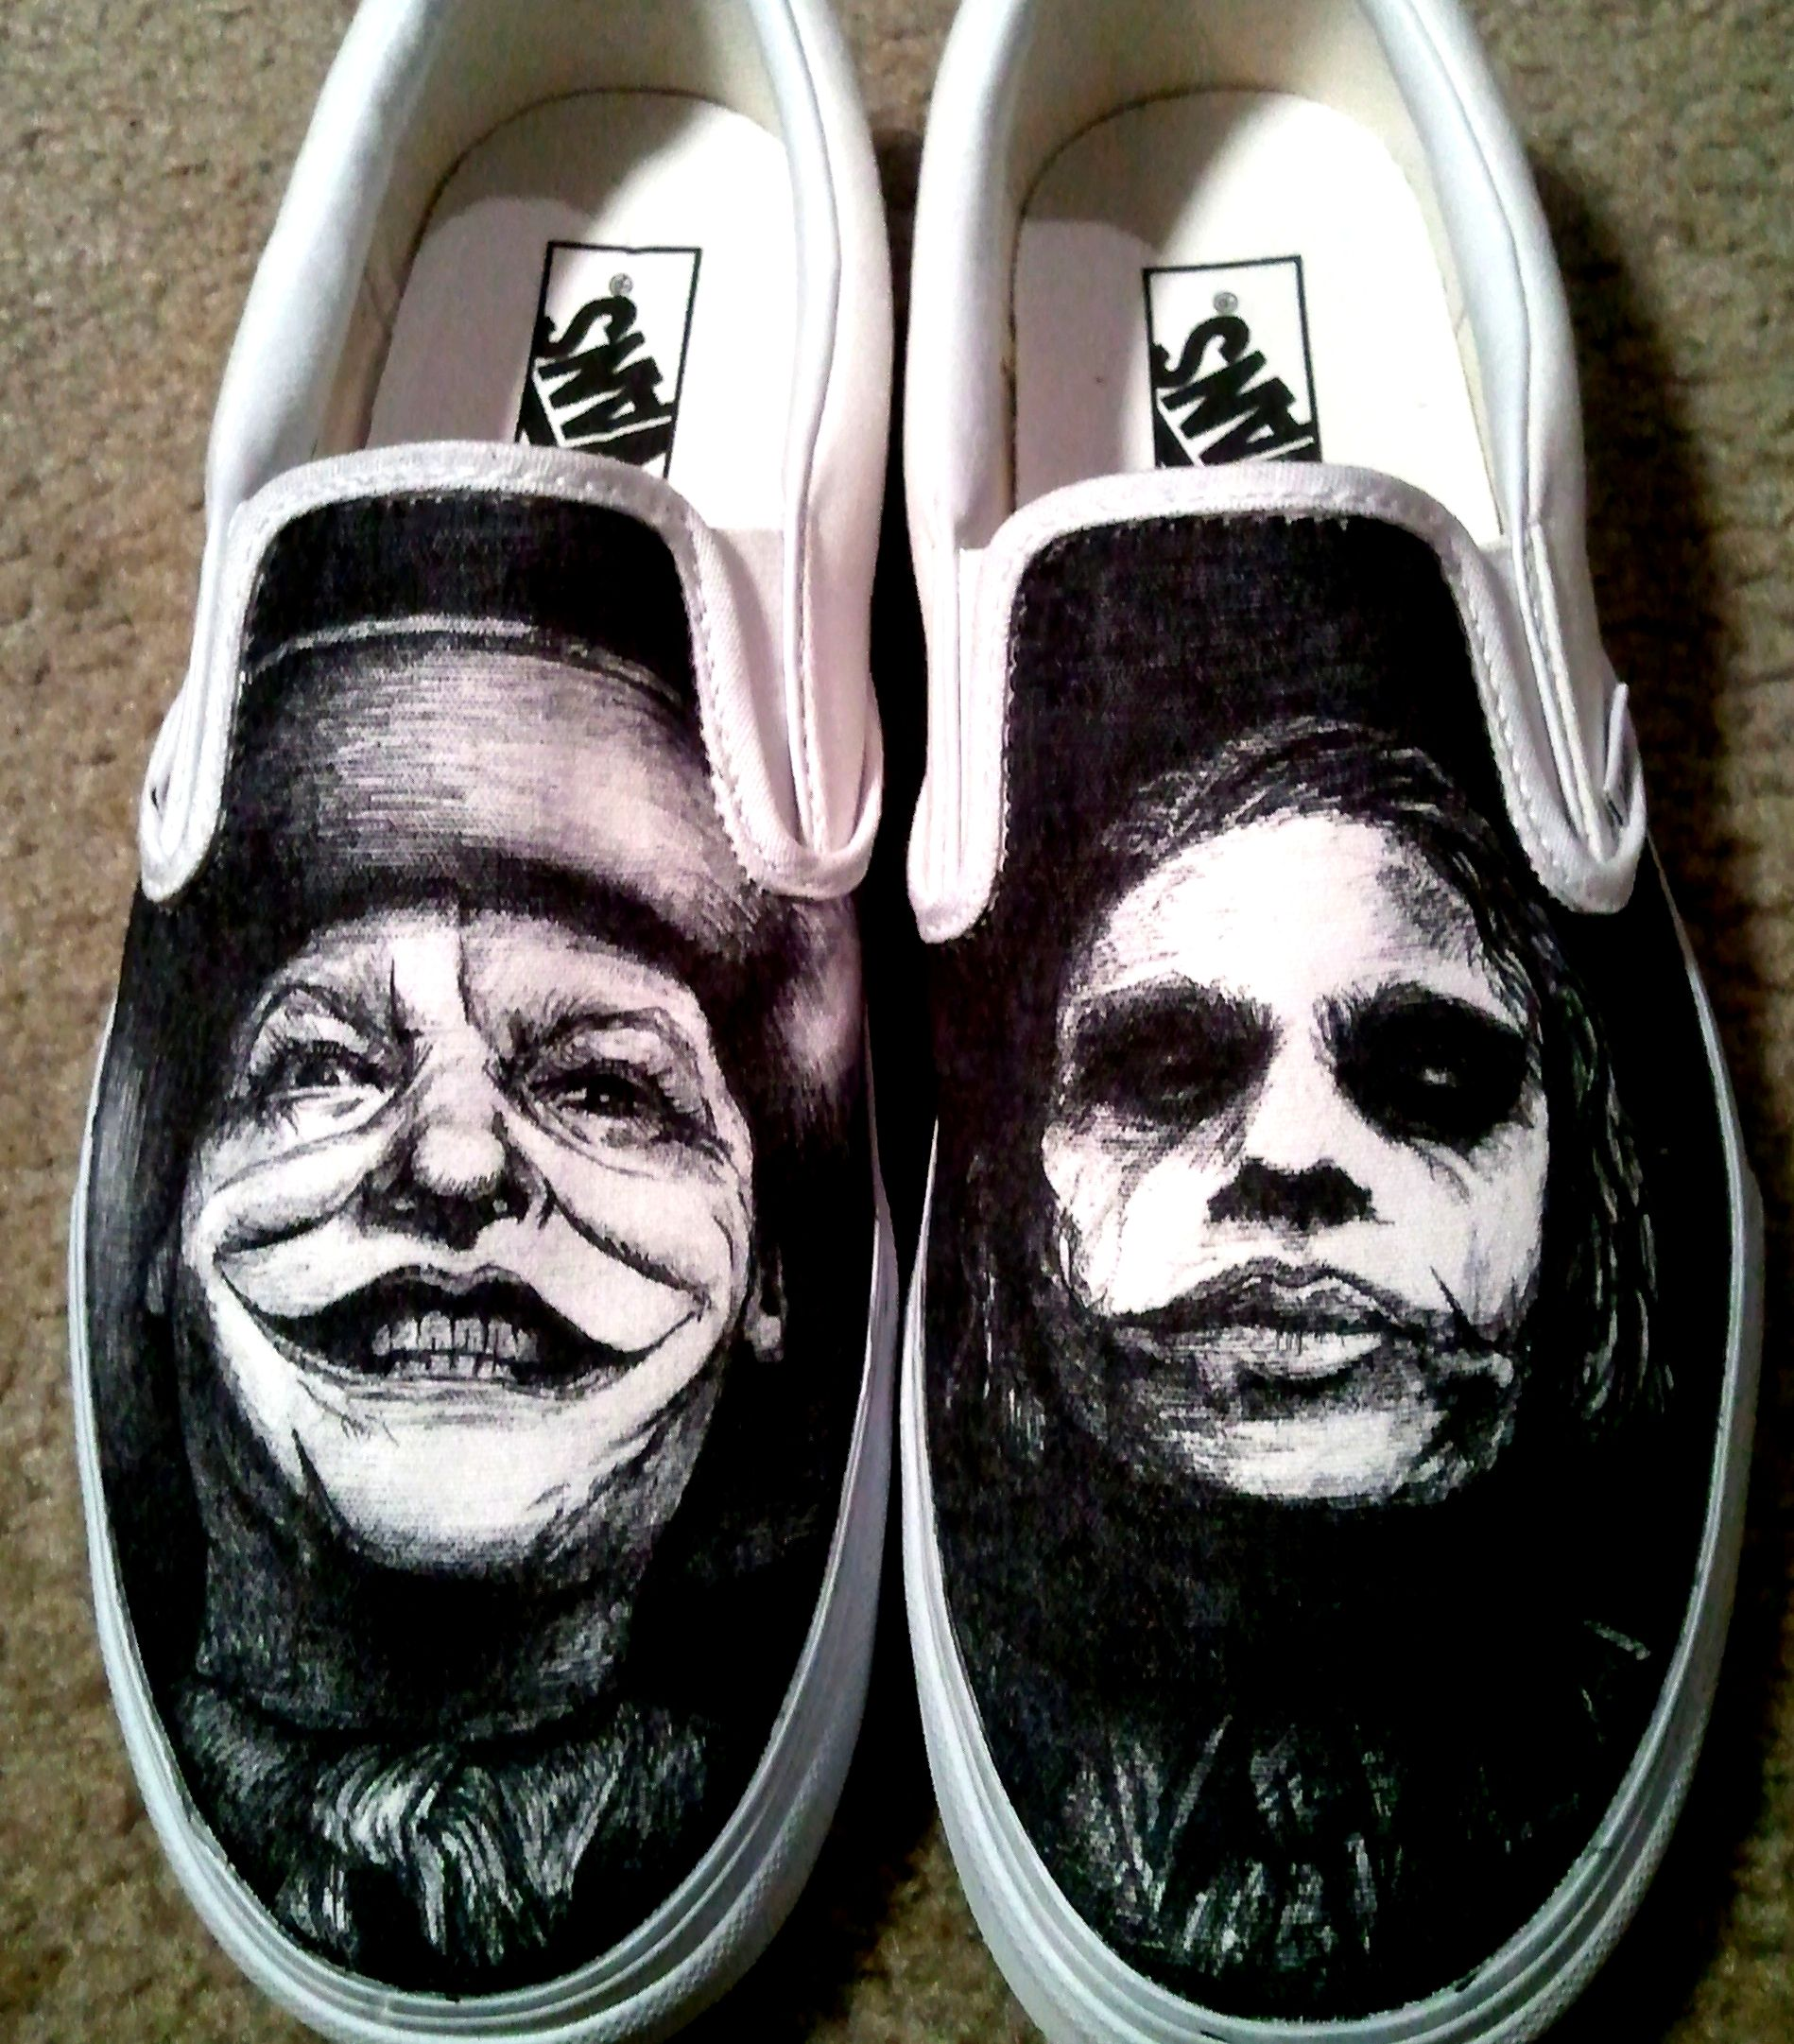 Drawn shoe van Made Custom Shoes Alzado to